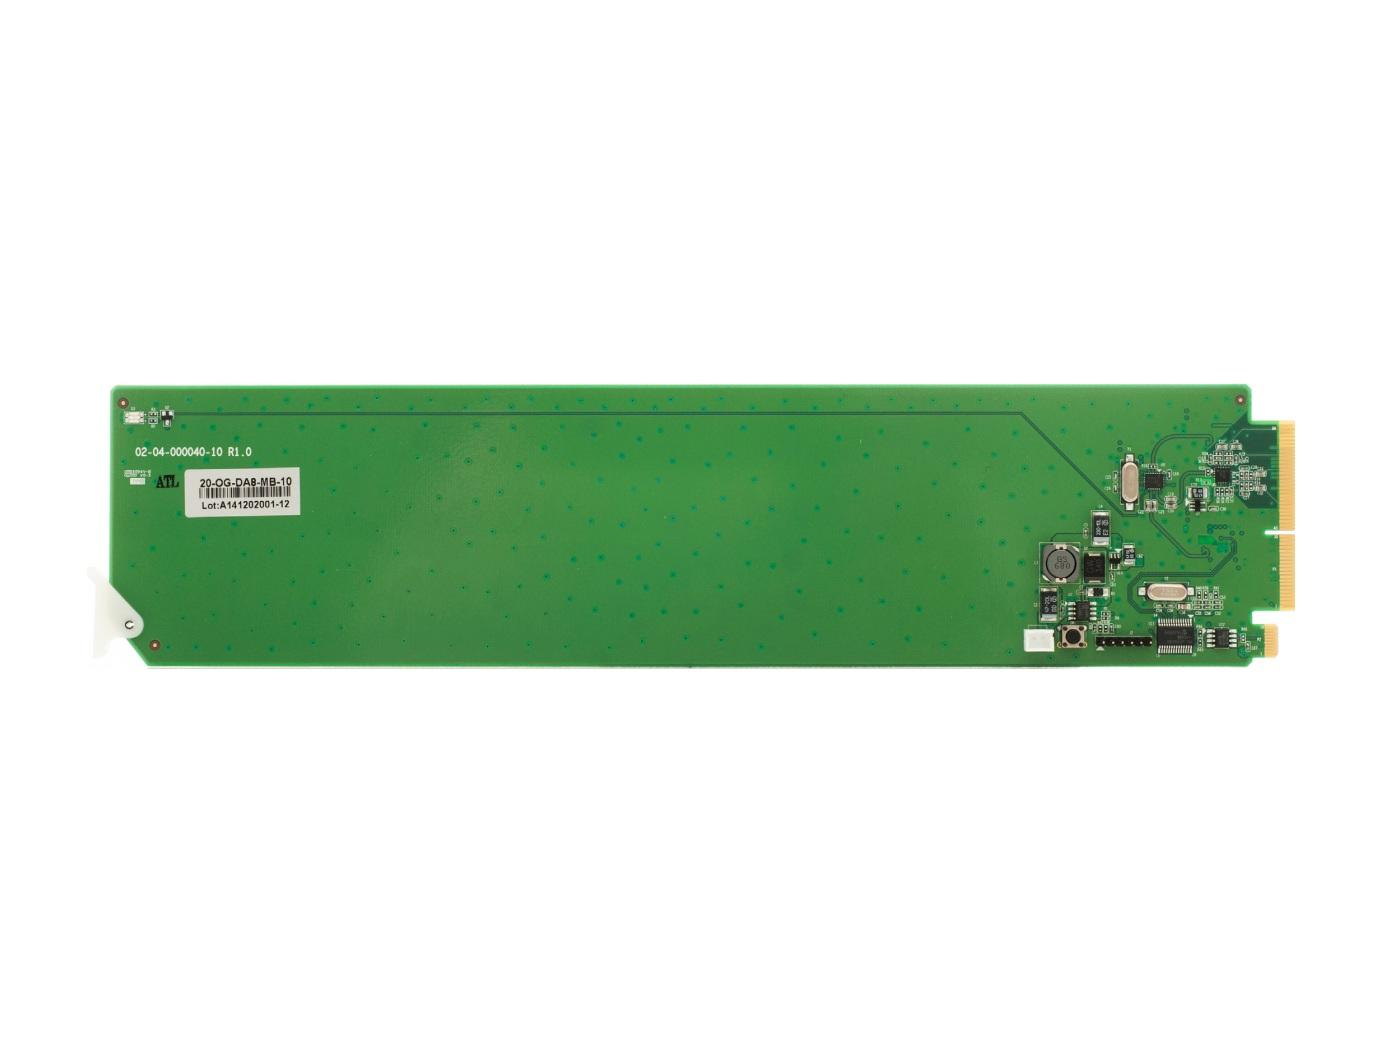 Apantac OG-DA-4HD-II-MB Stand Alone 1x4 Reclocking SDI Distribution Amplifier